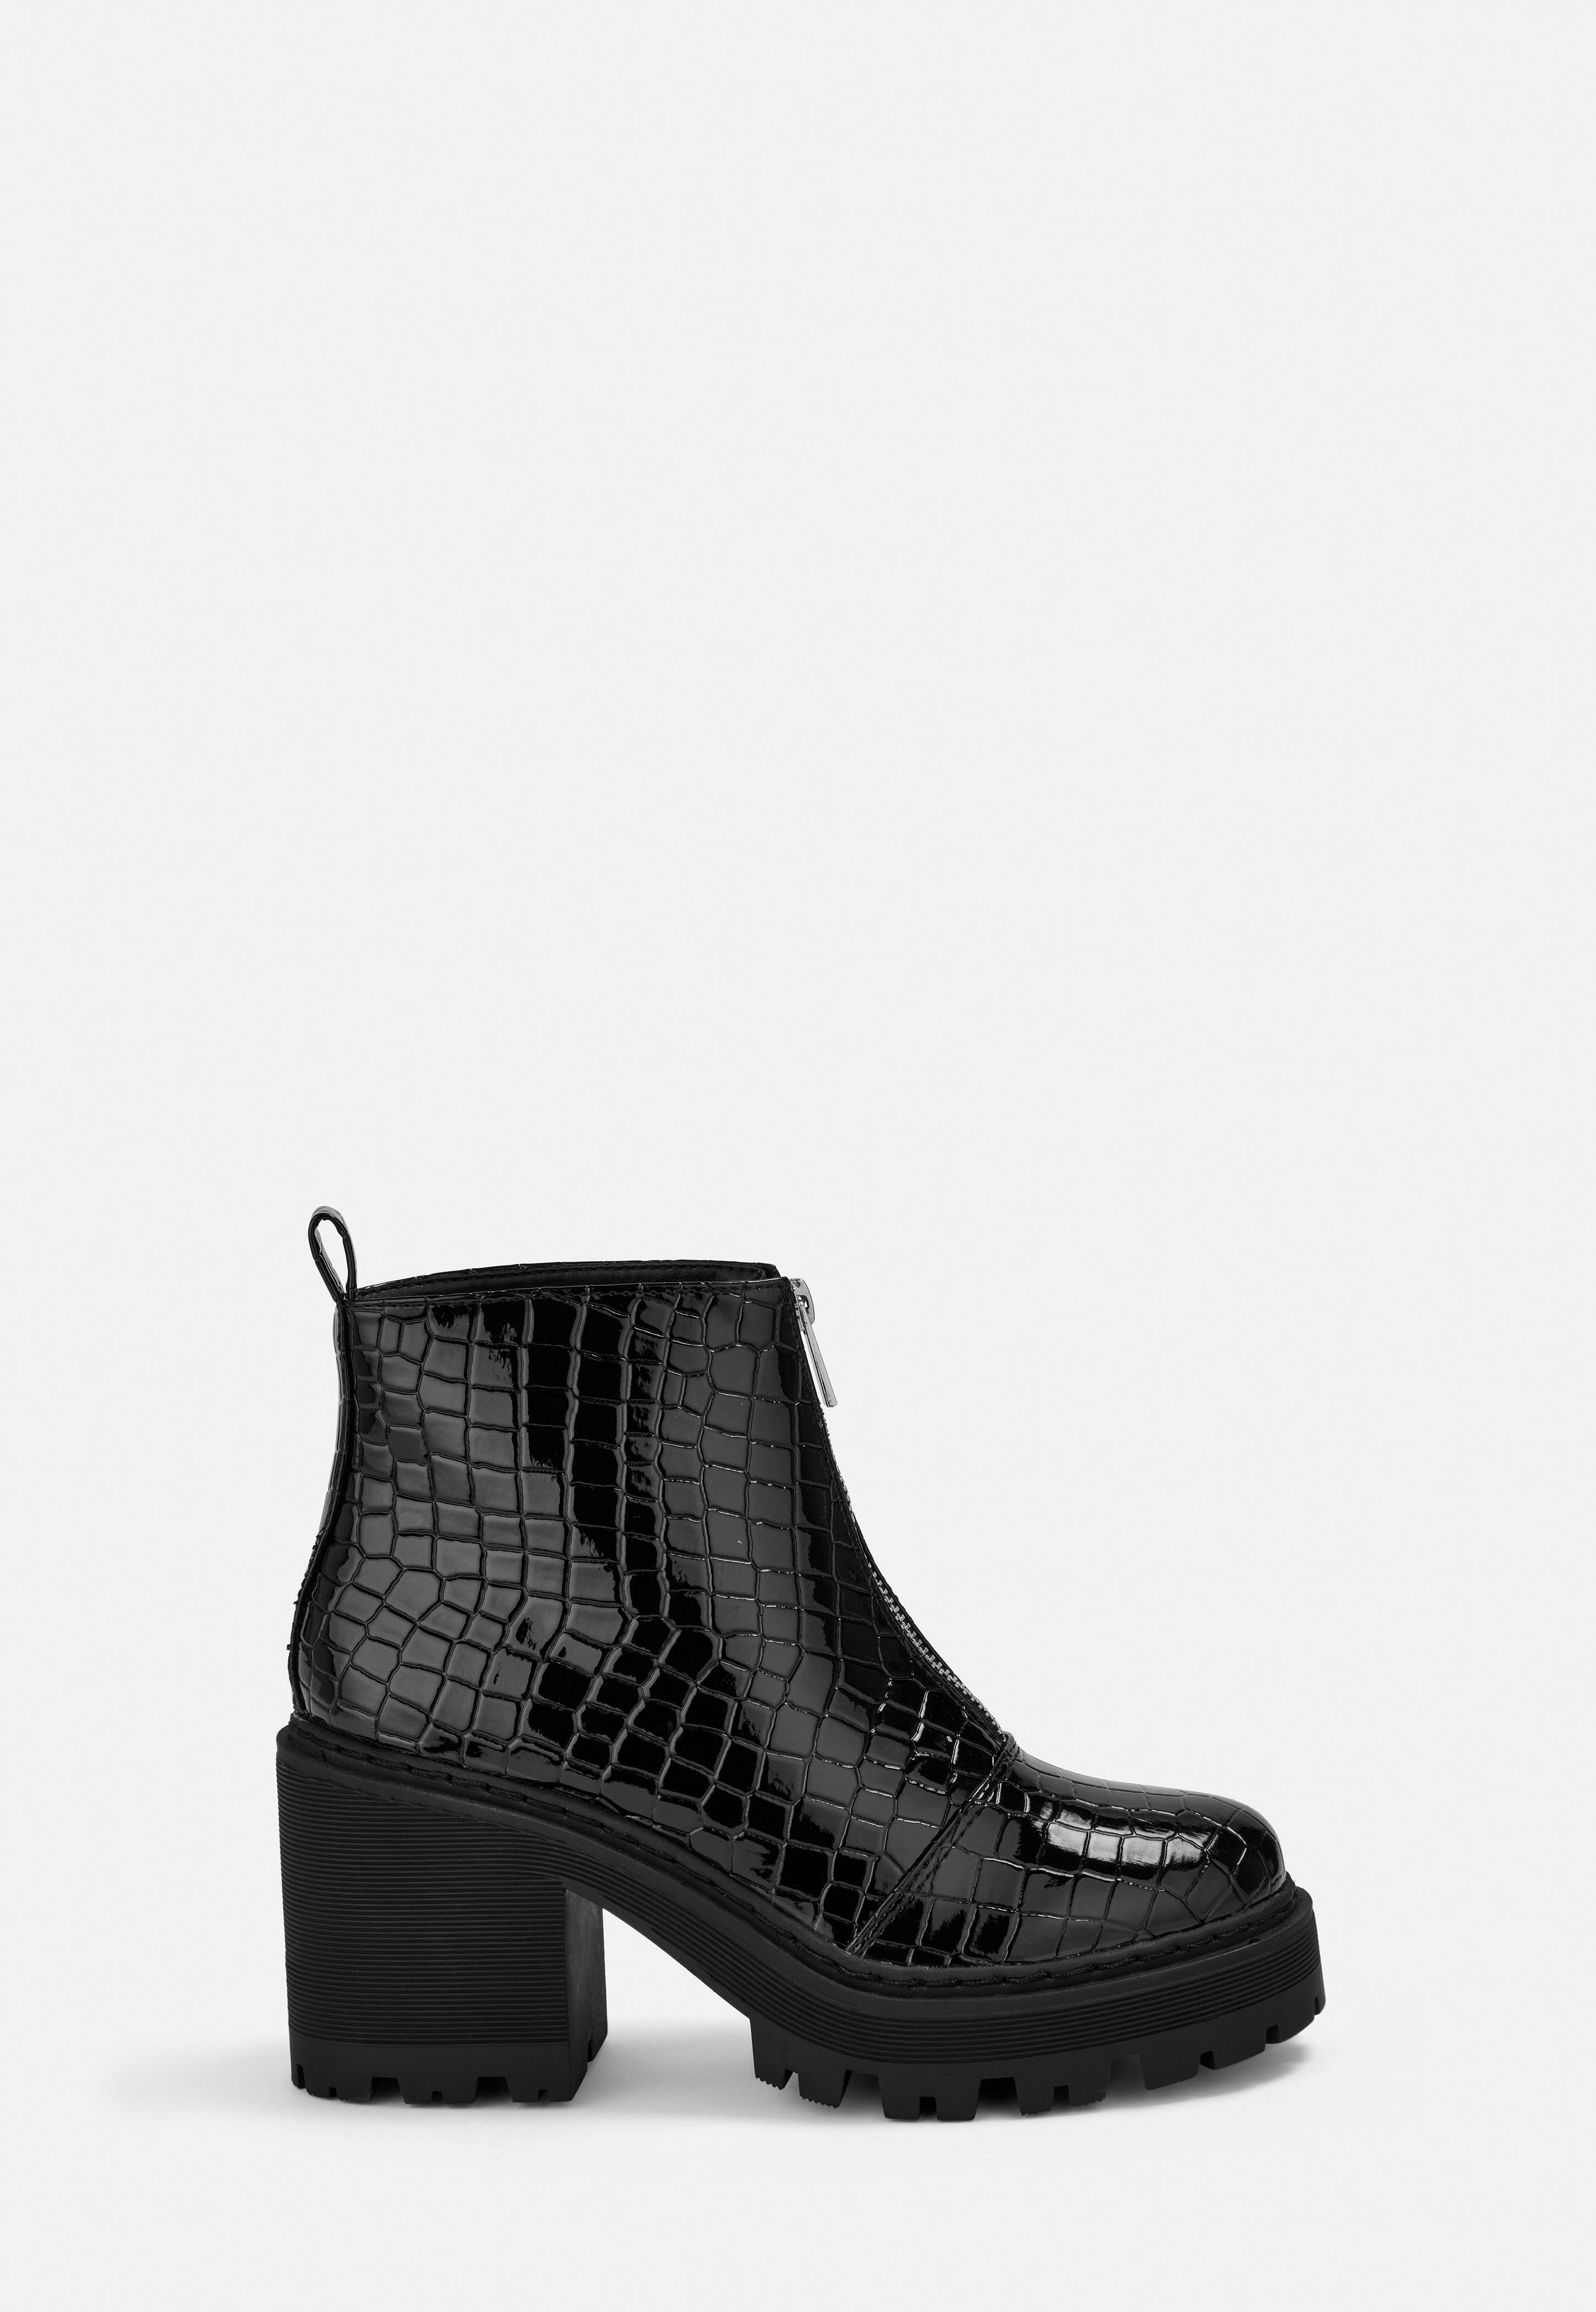 30768209f58 Black Croc Texture Chunky Heeled Ankle Boots